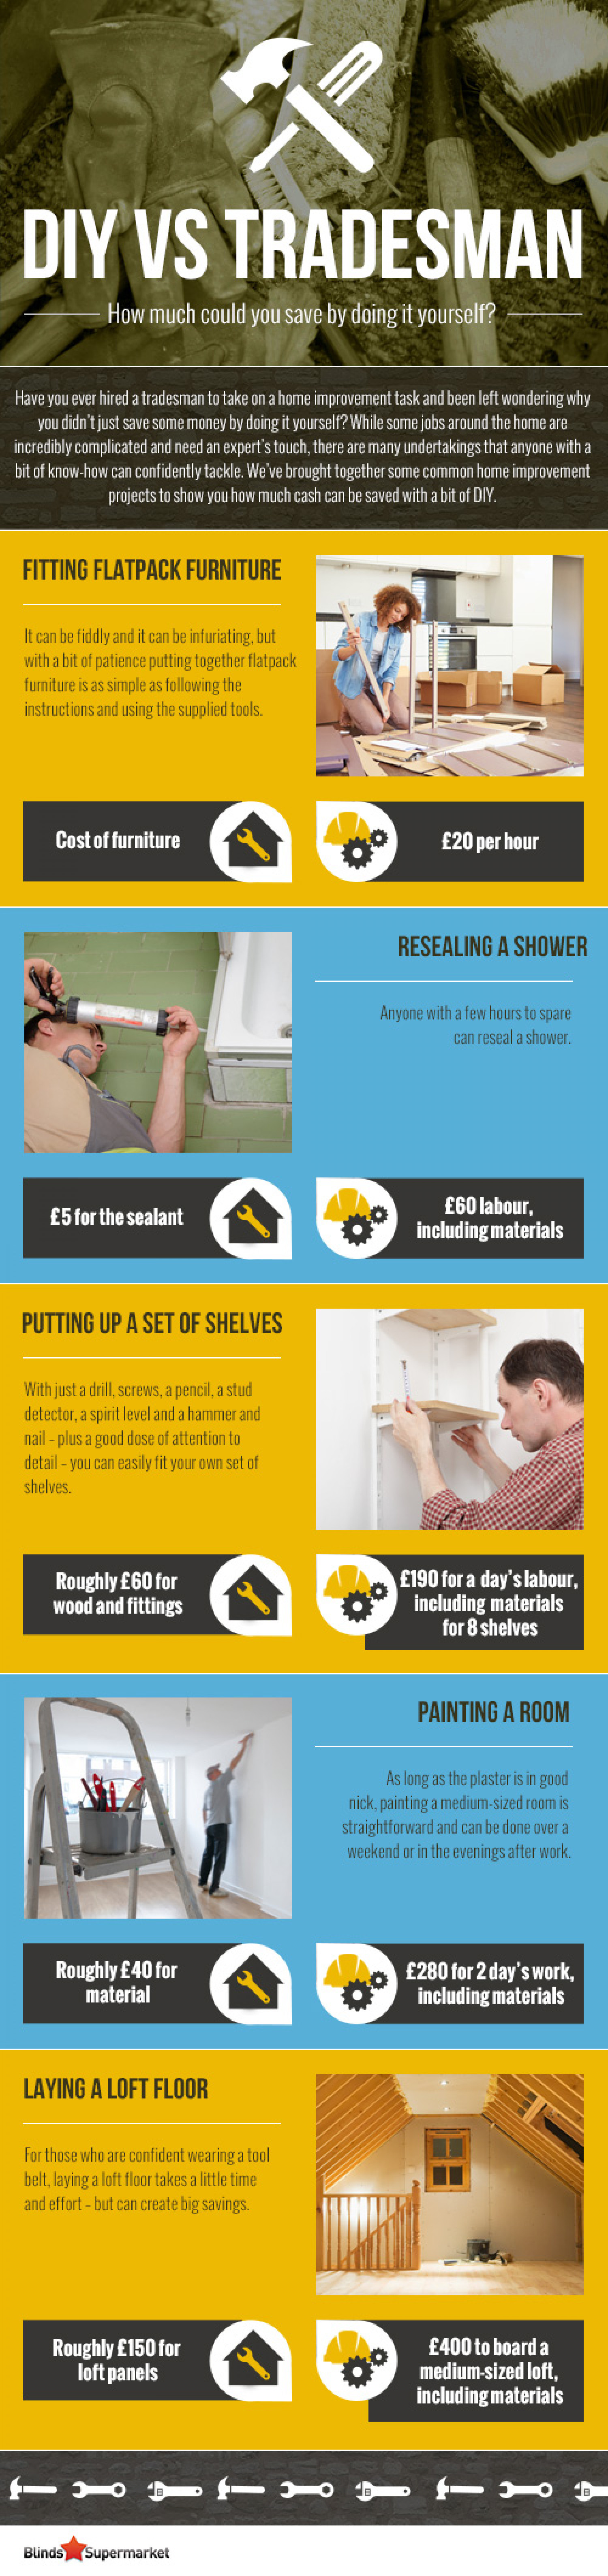 DIY Vs Tradesman Infographic